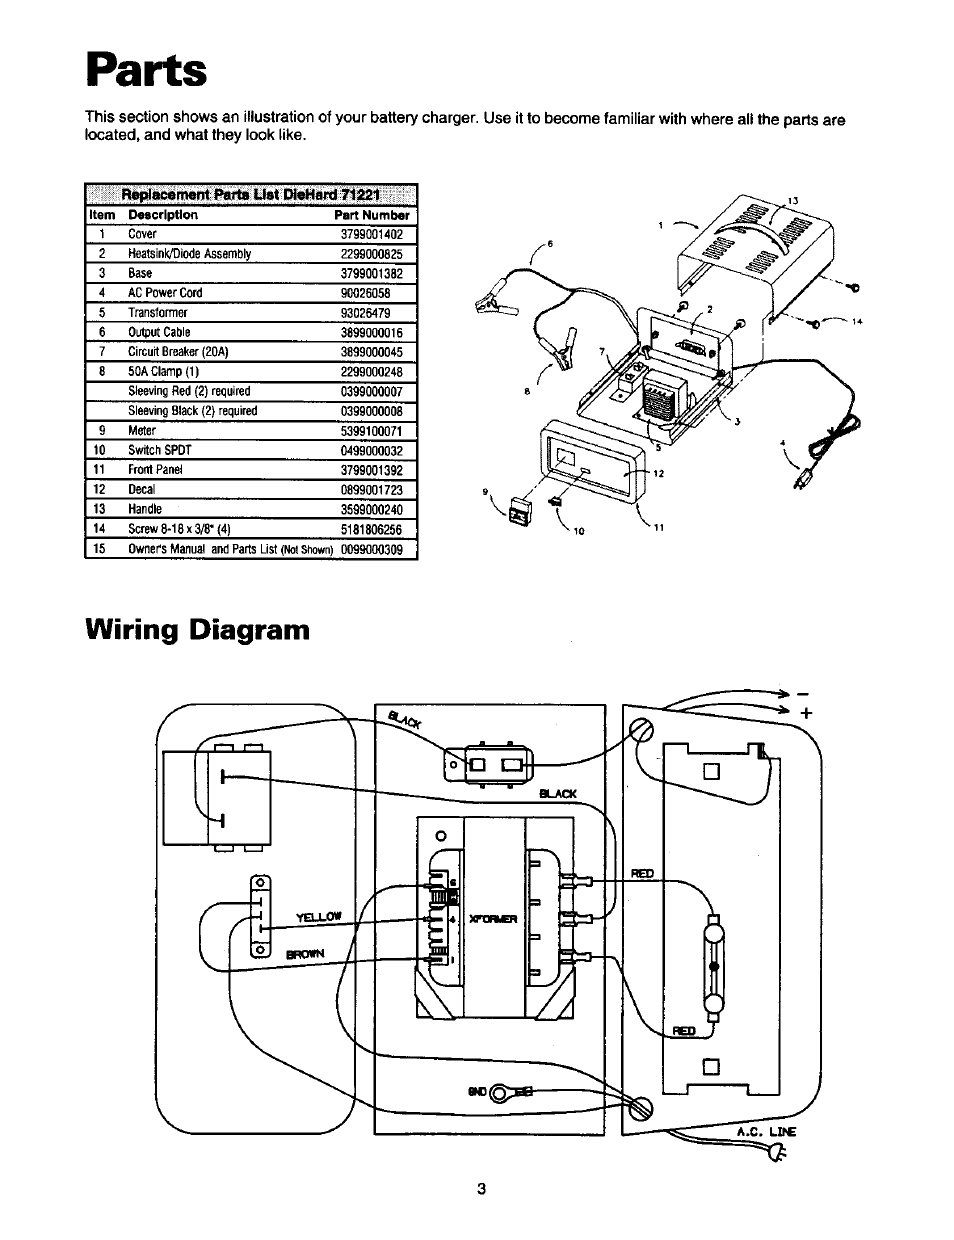 4 Wire Service Entrance Wiring. Diagrams. Wiring Diagram